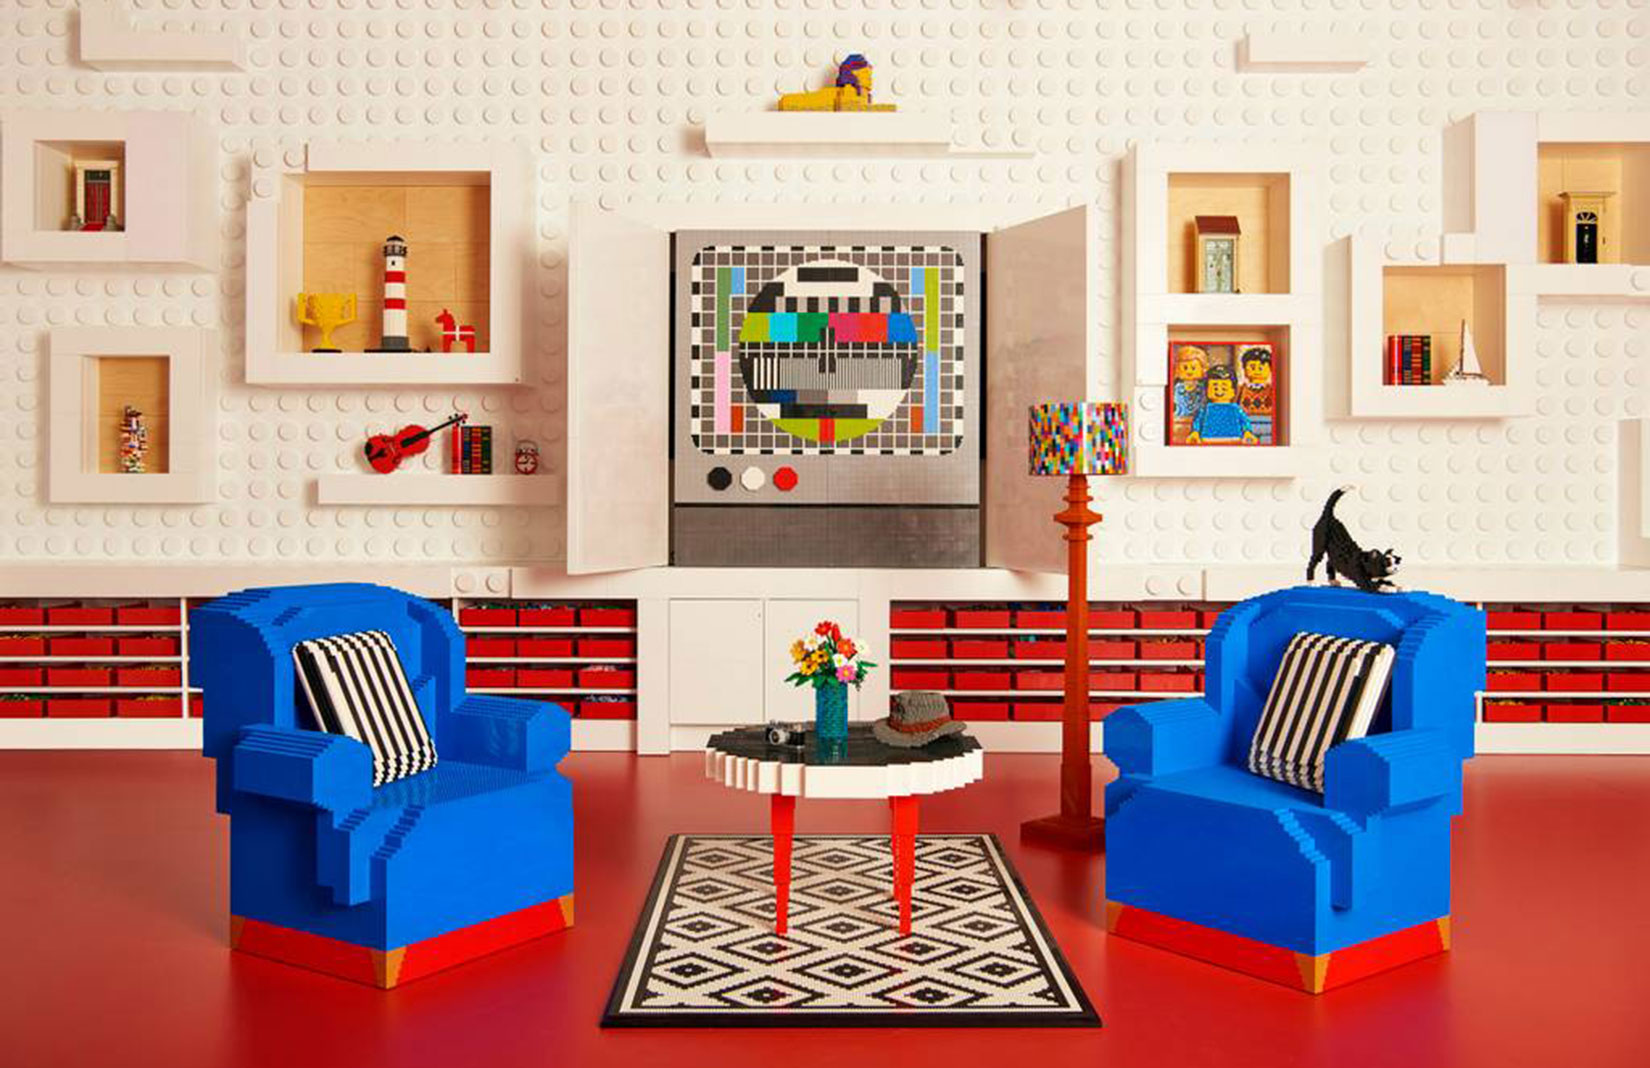 Lego House, available on Airbnb